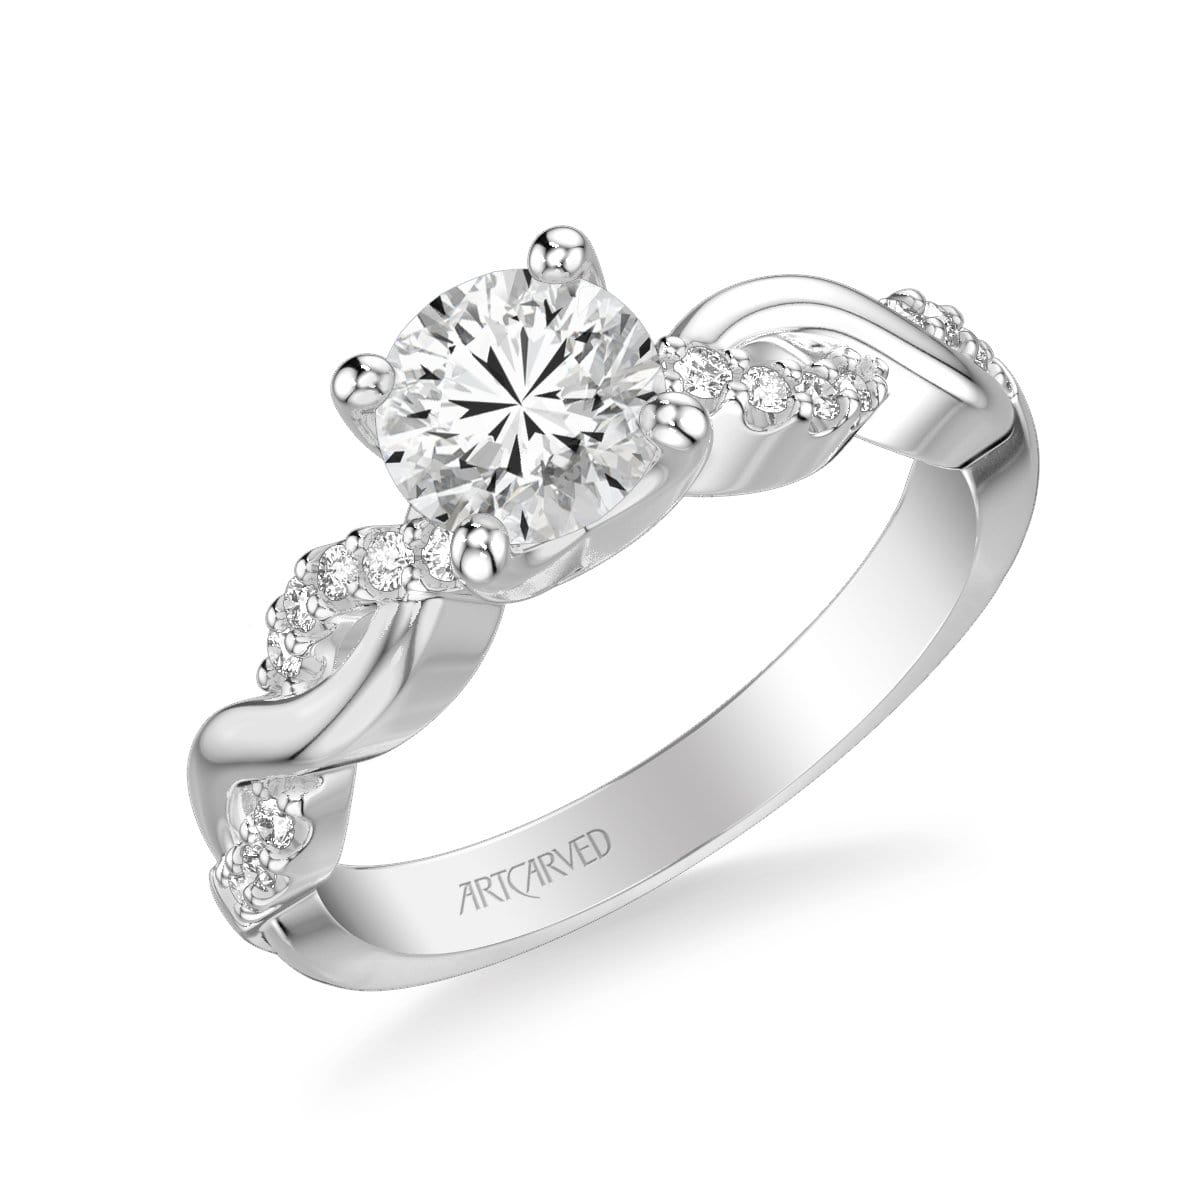 Gabriella Contemporary Side Stone Twist Diamond Engagement Ring